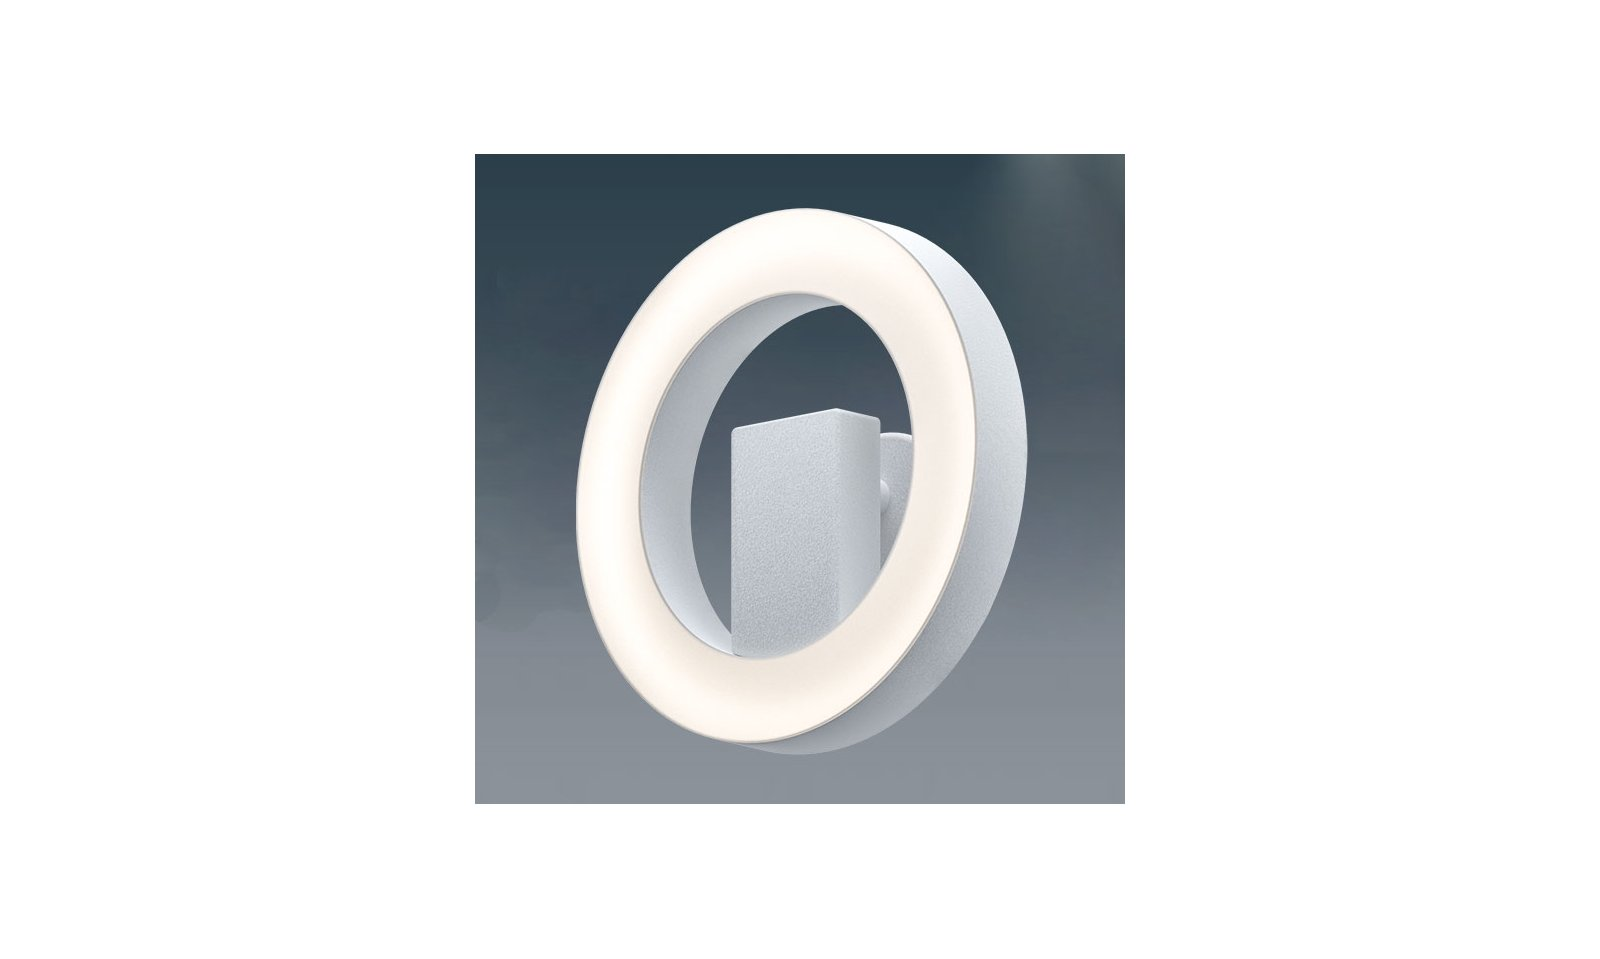 Eglo alvendre led dimmable wall lamp in steel and polycarbonate